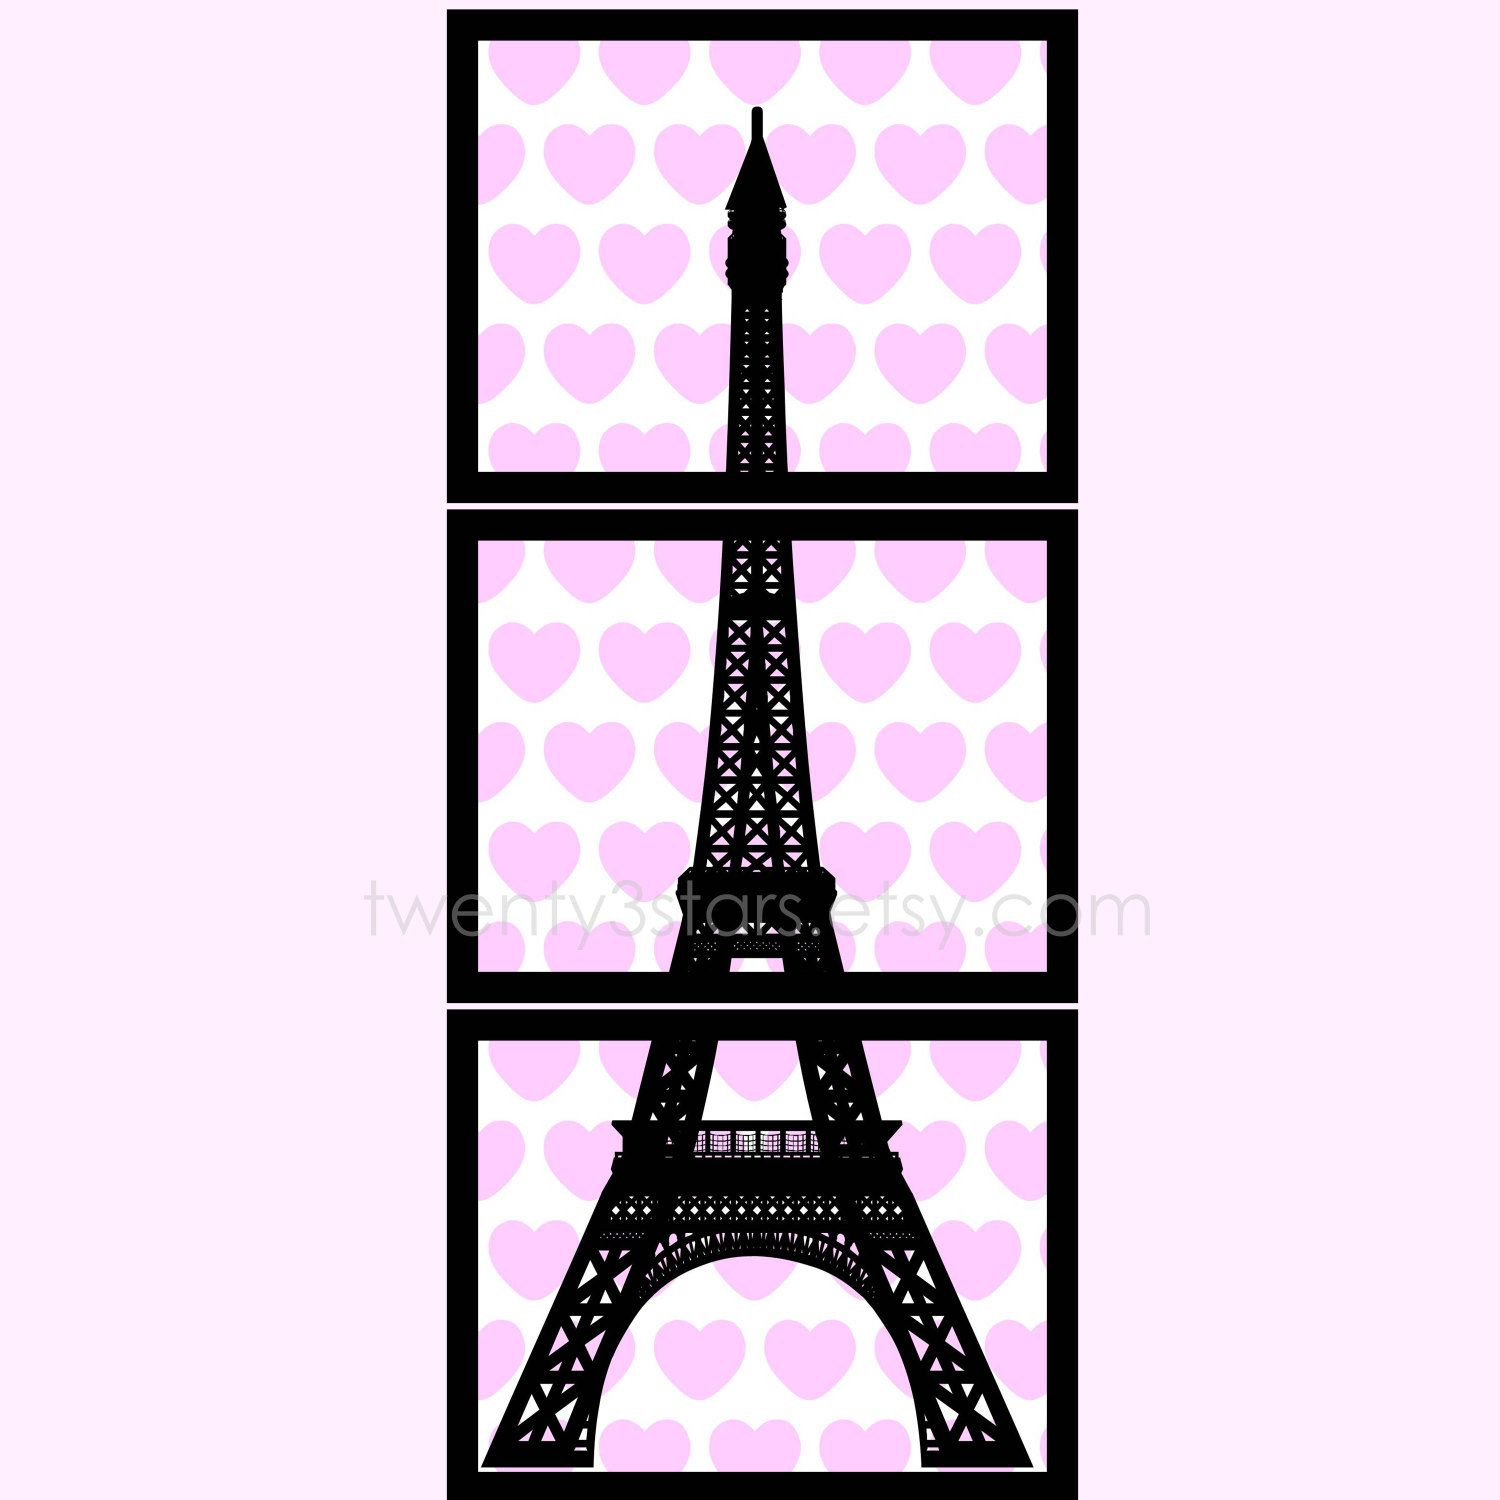 Kinderzimmer wand zitate eiffel tower triptych giclée prints with hearts or flowers perfect